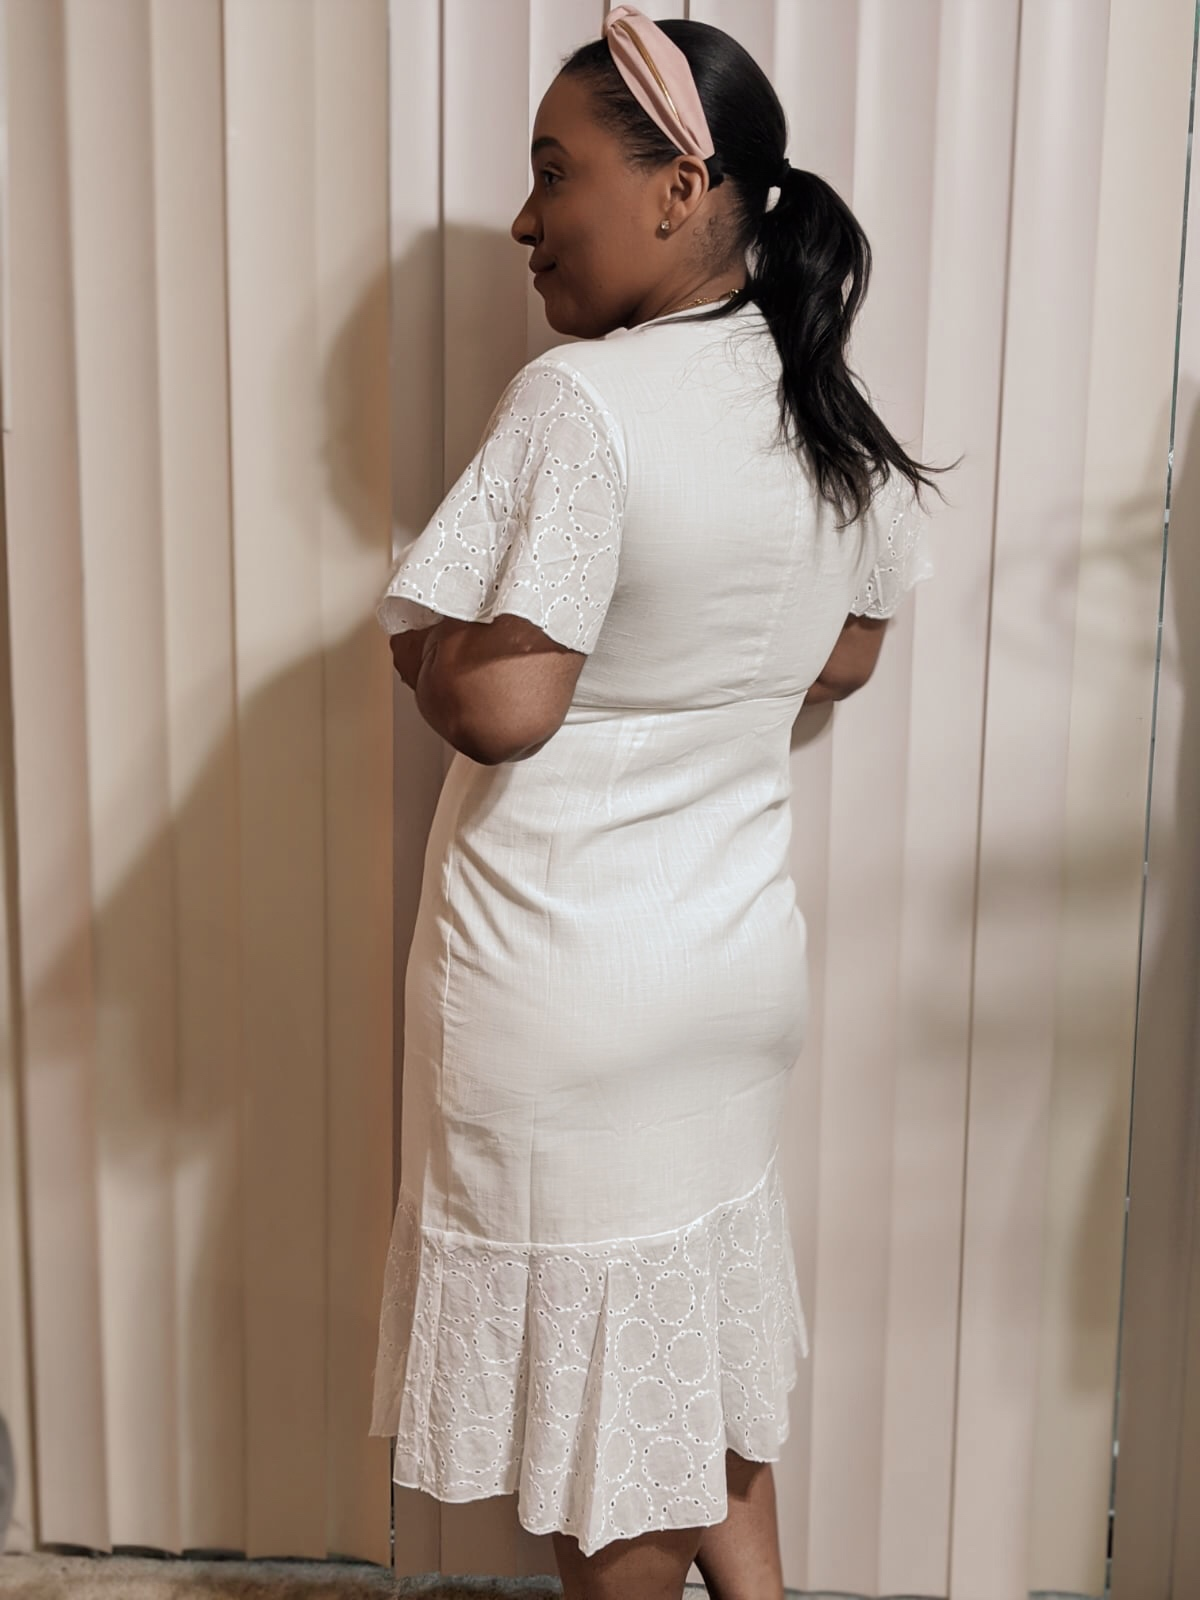 shein, shein reviews, how to style a white dress, pattys kloset, shein dresses, summer dresses